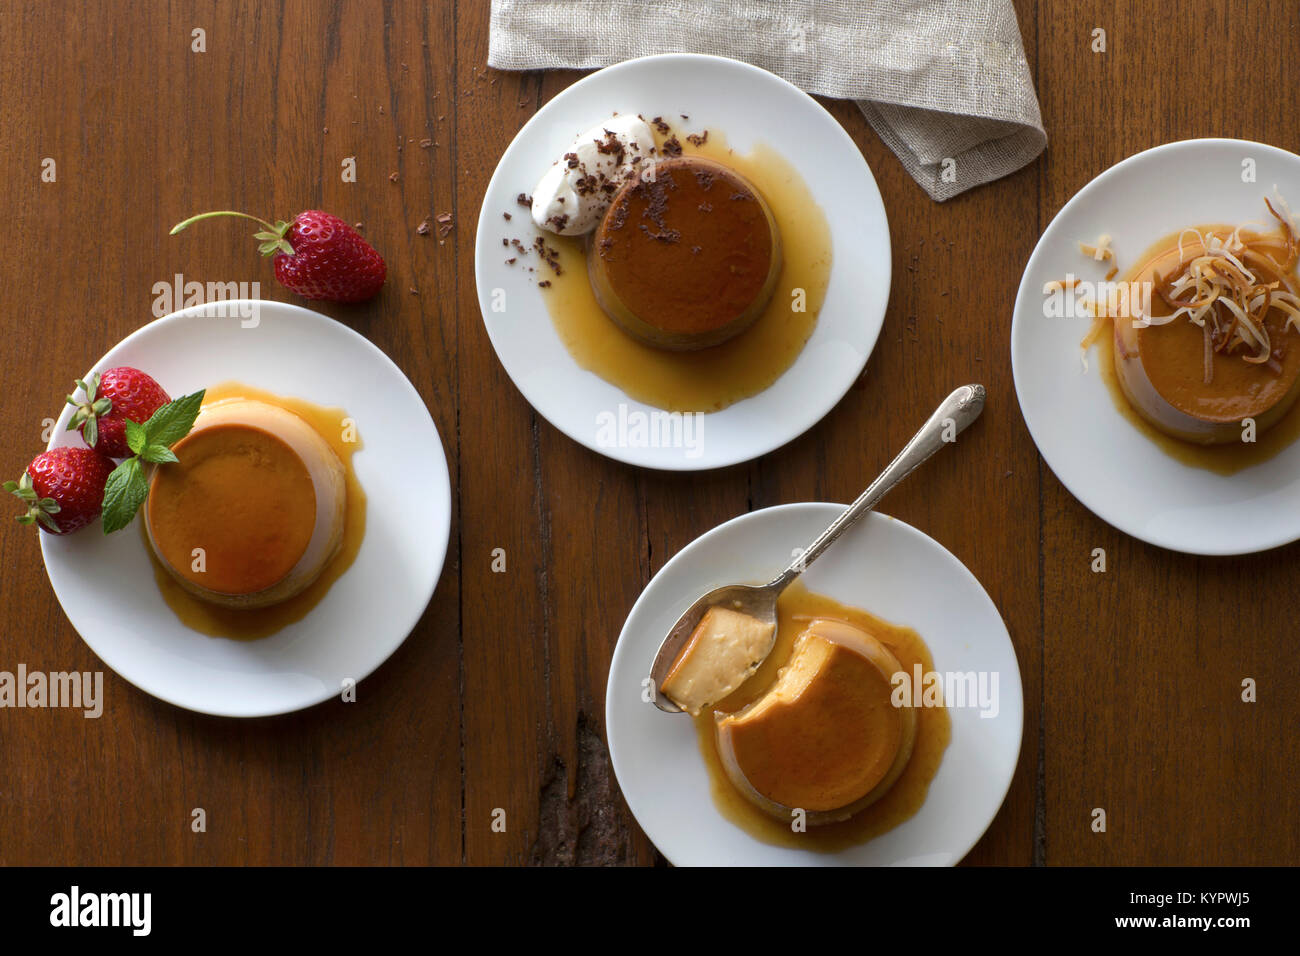 Assorted flavored individually plated flans photographed on a rustic wood surface with vintage silverware and linens. - Stock Image